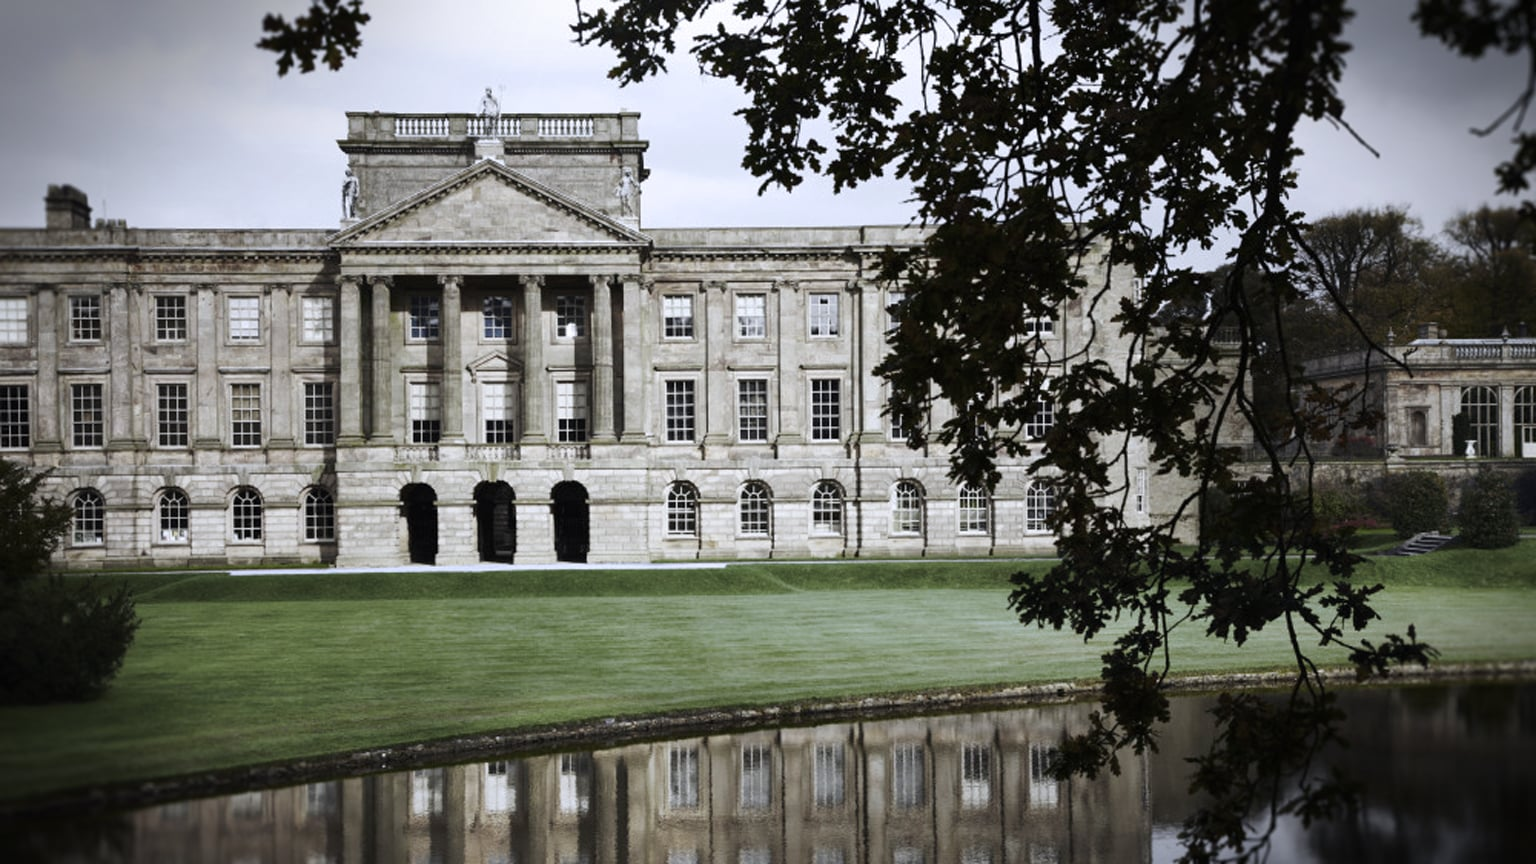 4) Lyme Park, Greater Manchester - Free entry with National Art Pass